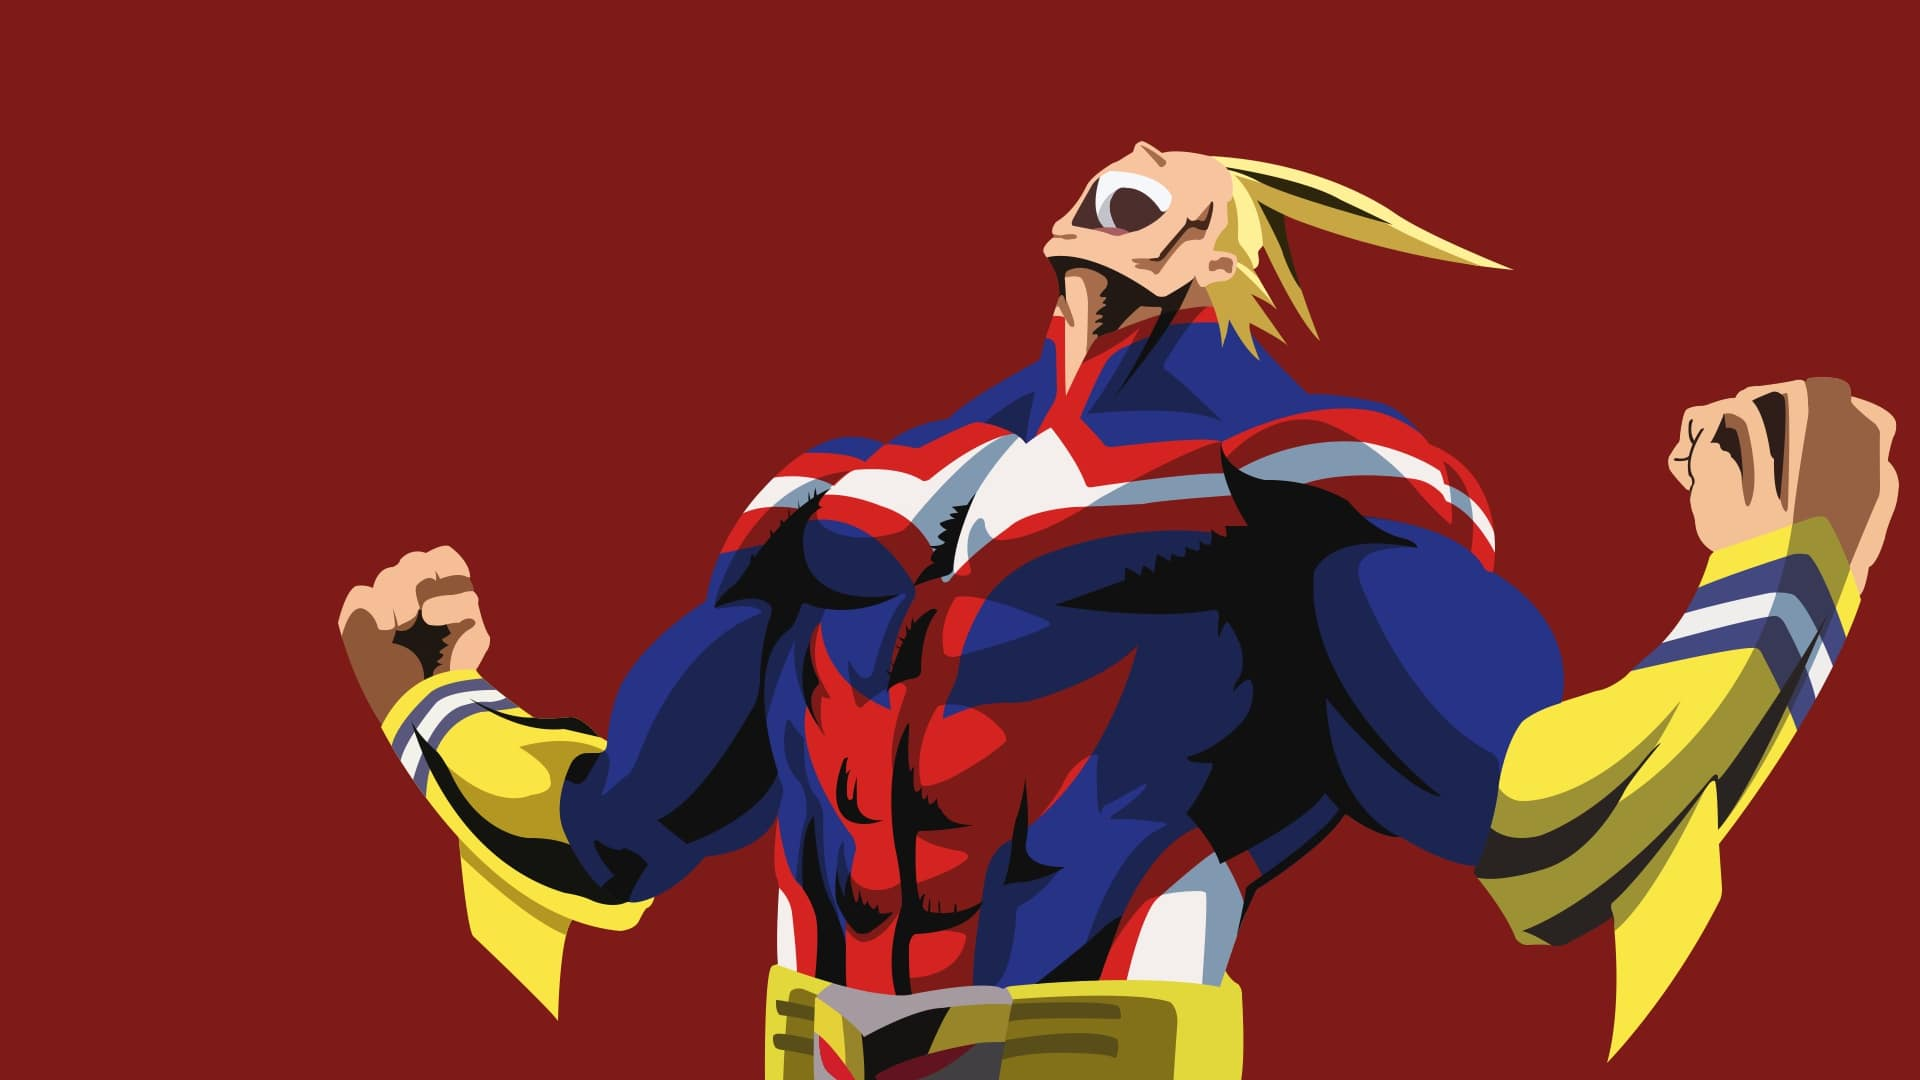 Download All Might Wallpaper Hd Backgrounds Download Itl Cat